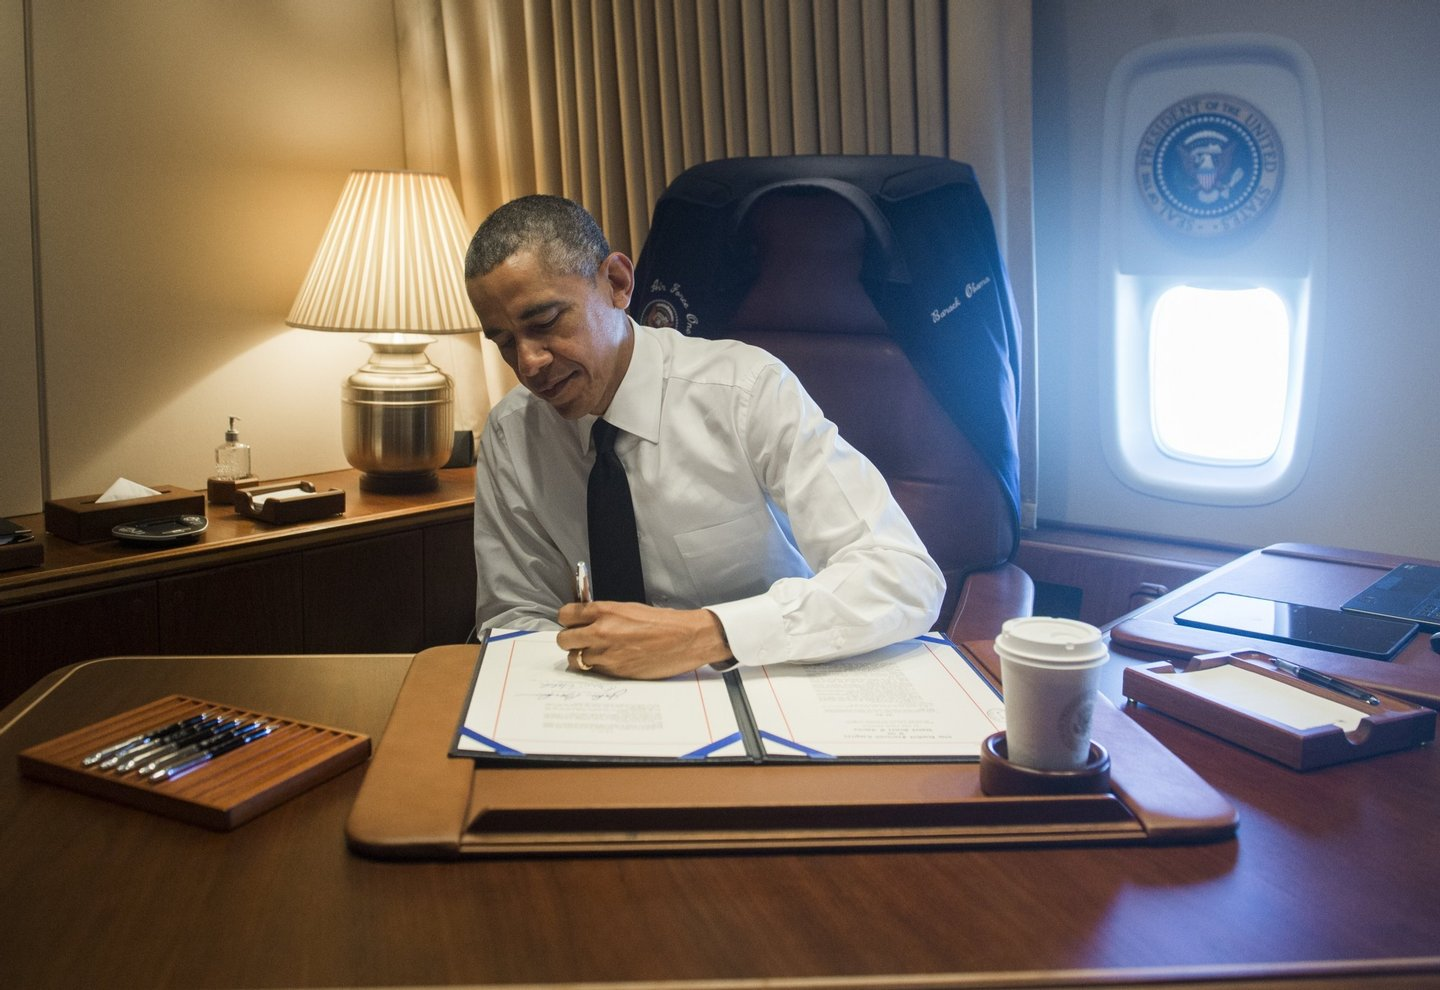 US President Barack Obama signs a bill that will give the Congressional Gold Medal to the Foot Soldiers who Participated in Bloody Sunday in Selma, Alabama, in his office aboard Air Force One as he flies to Alabama on March 7, 2015. Obama is traveling to participate in an event commemorating the 50th anniversary of Bloody Sunday, when civil rights marchers attempting to walk to the Alabama capital of Montgomery to end voting discrimination against African Americans clashed with police. AFP PHOTO / SAUL LOEB (Photo credit should read SAUL LOEB/AFP/Getty Images)